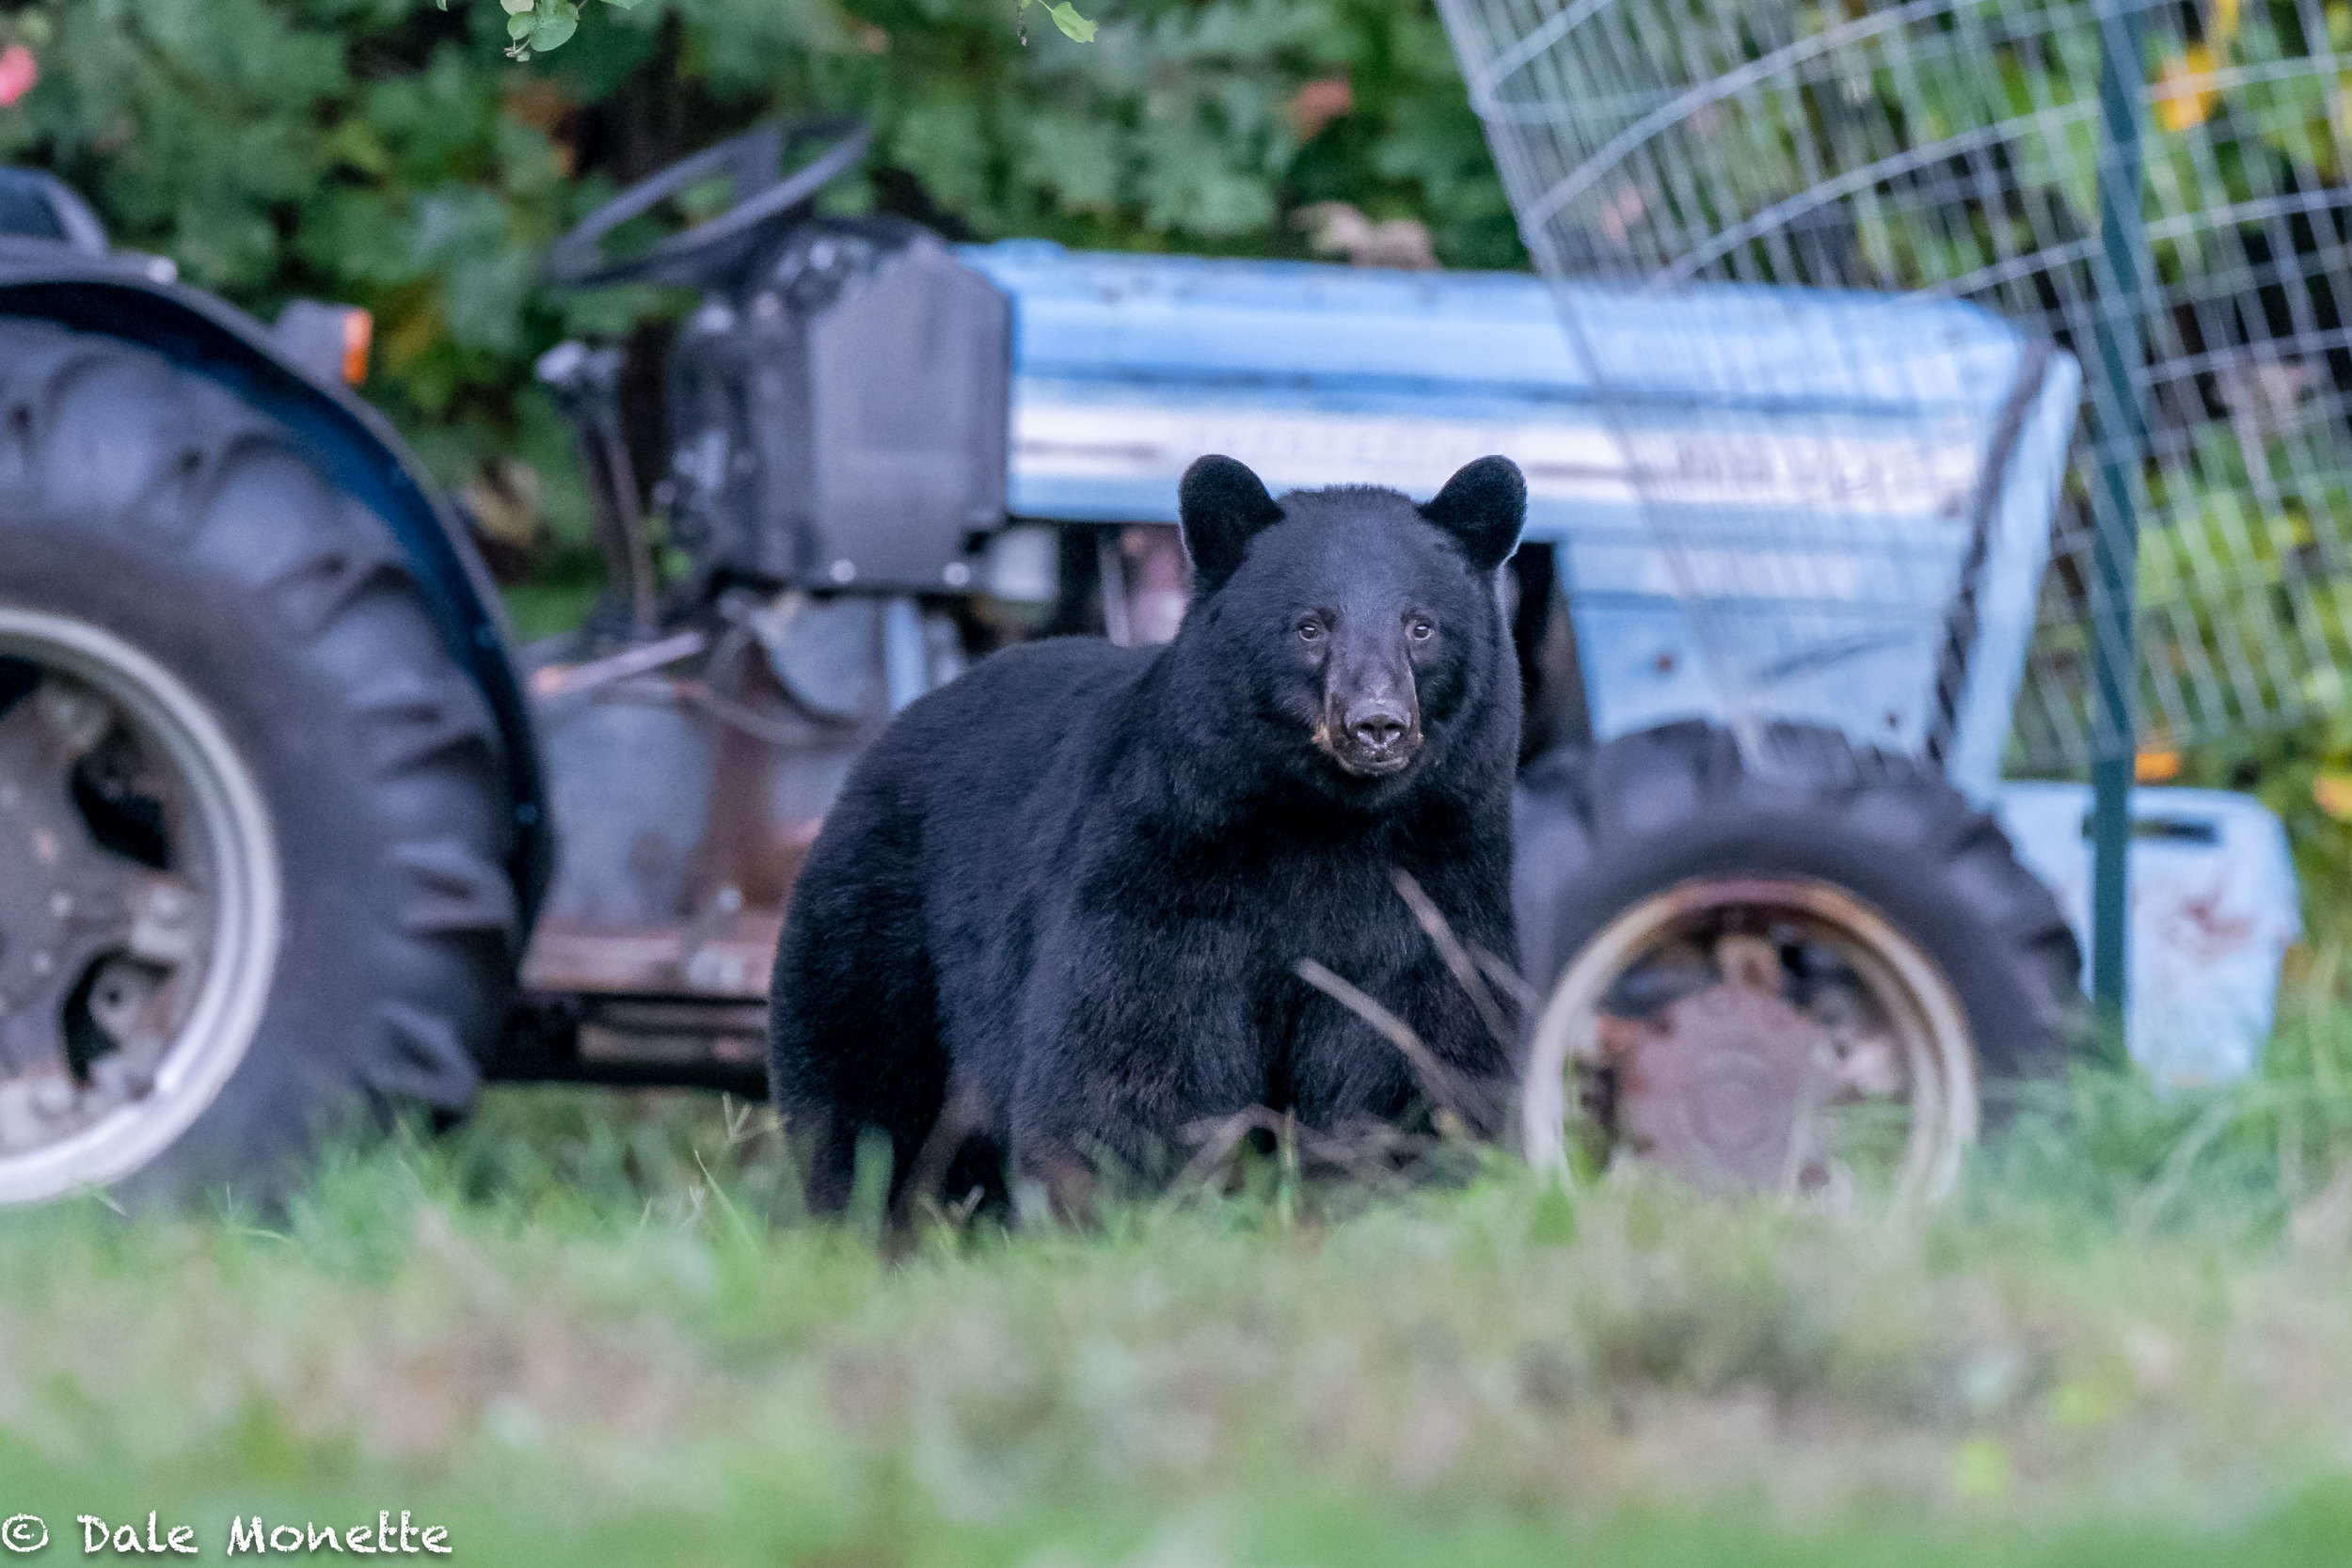 On another evening about dusk I spotted the same sow with her 2 cubs walk out of the woods by this tractor used for mowing. The cubs spent a few minutes walking all over it. I don't think they had ever seen one.